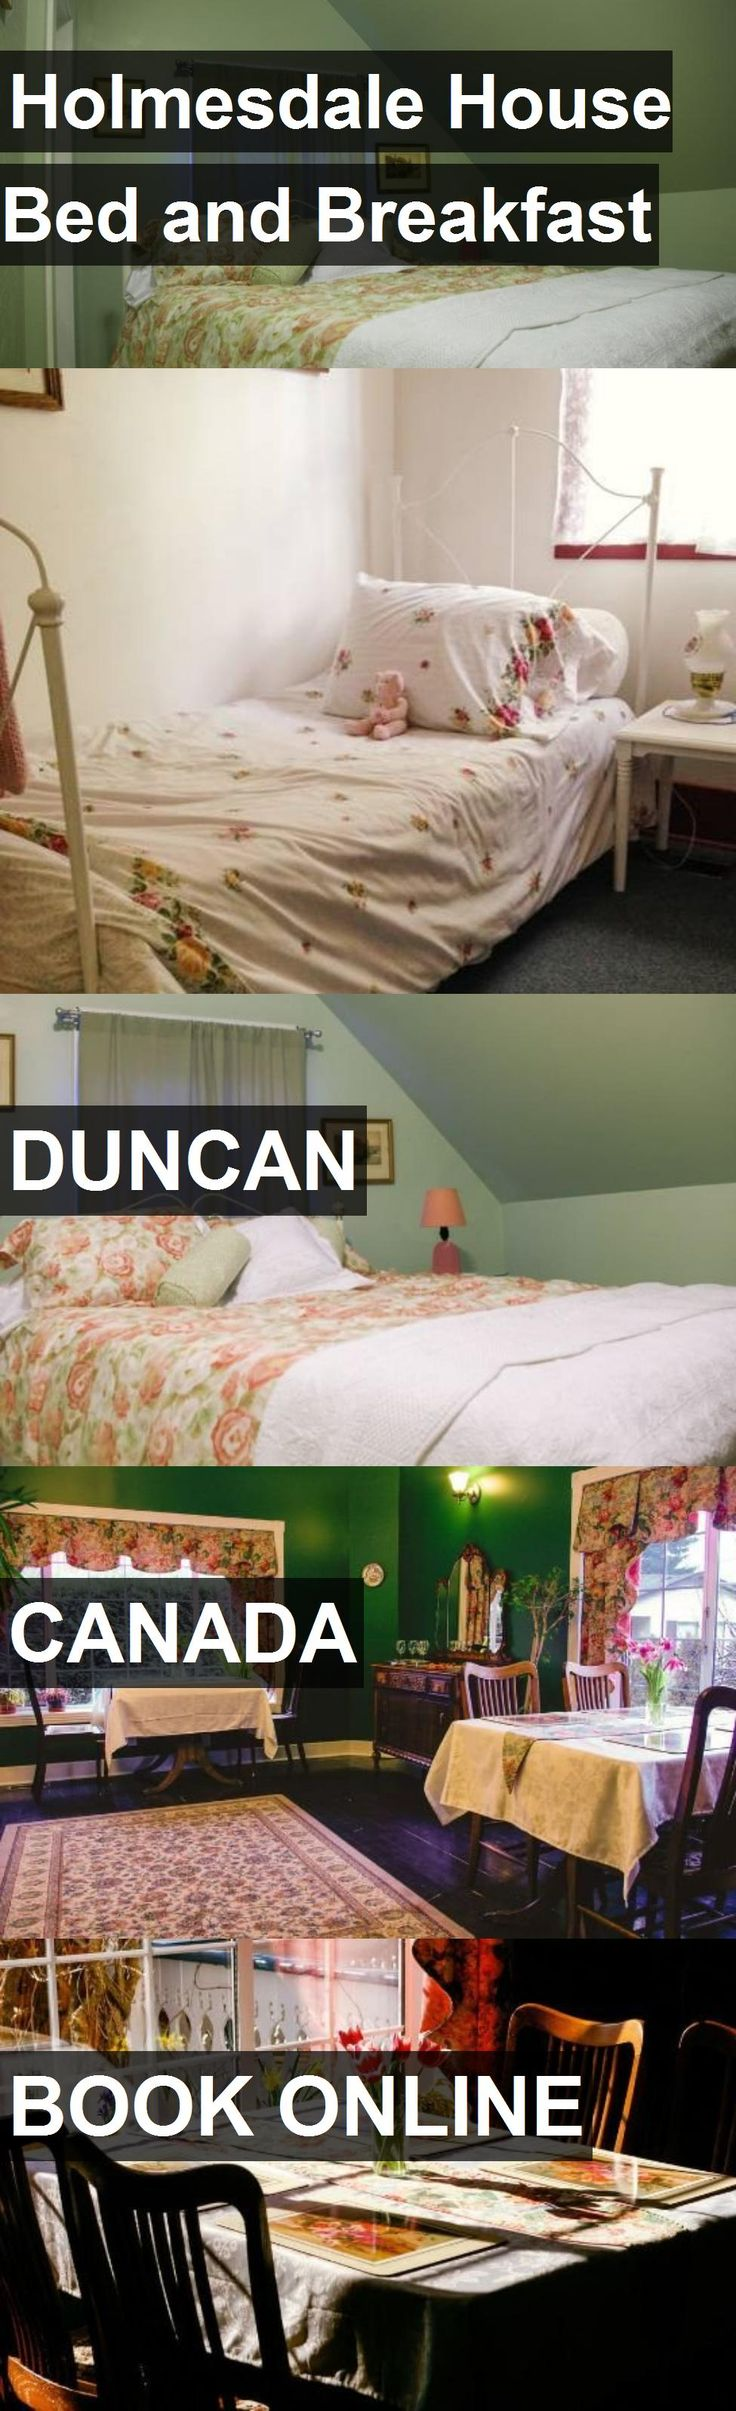 Hotel Holmesdale House Bed and Breakfast in Duncan, Canada. For more information, photos, reviews and best prices please follow the link. #Canada #Duncan #HolmesdaleHouseBedandBreakfast #hotel #travel #vacation